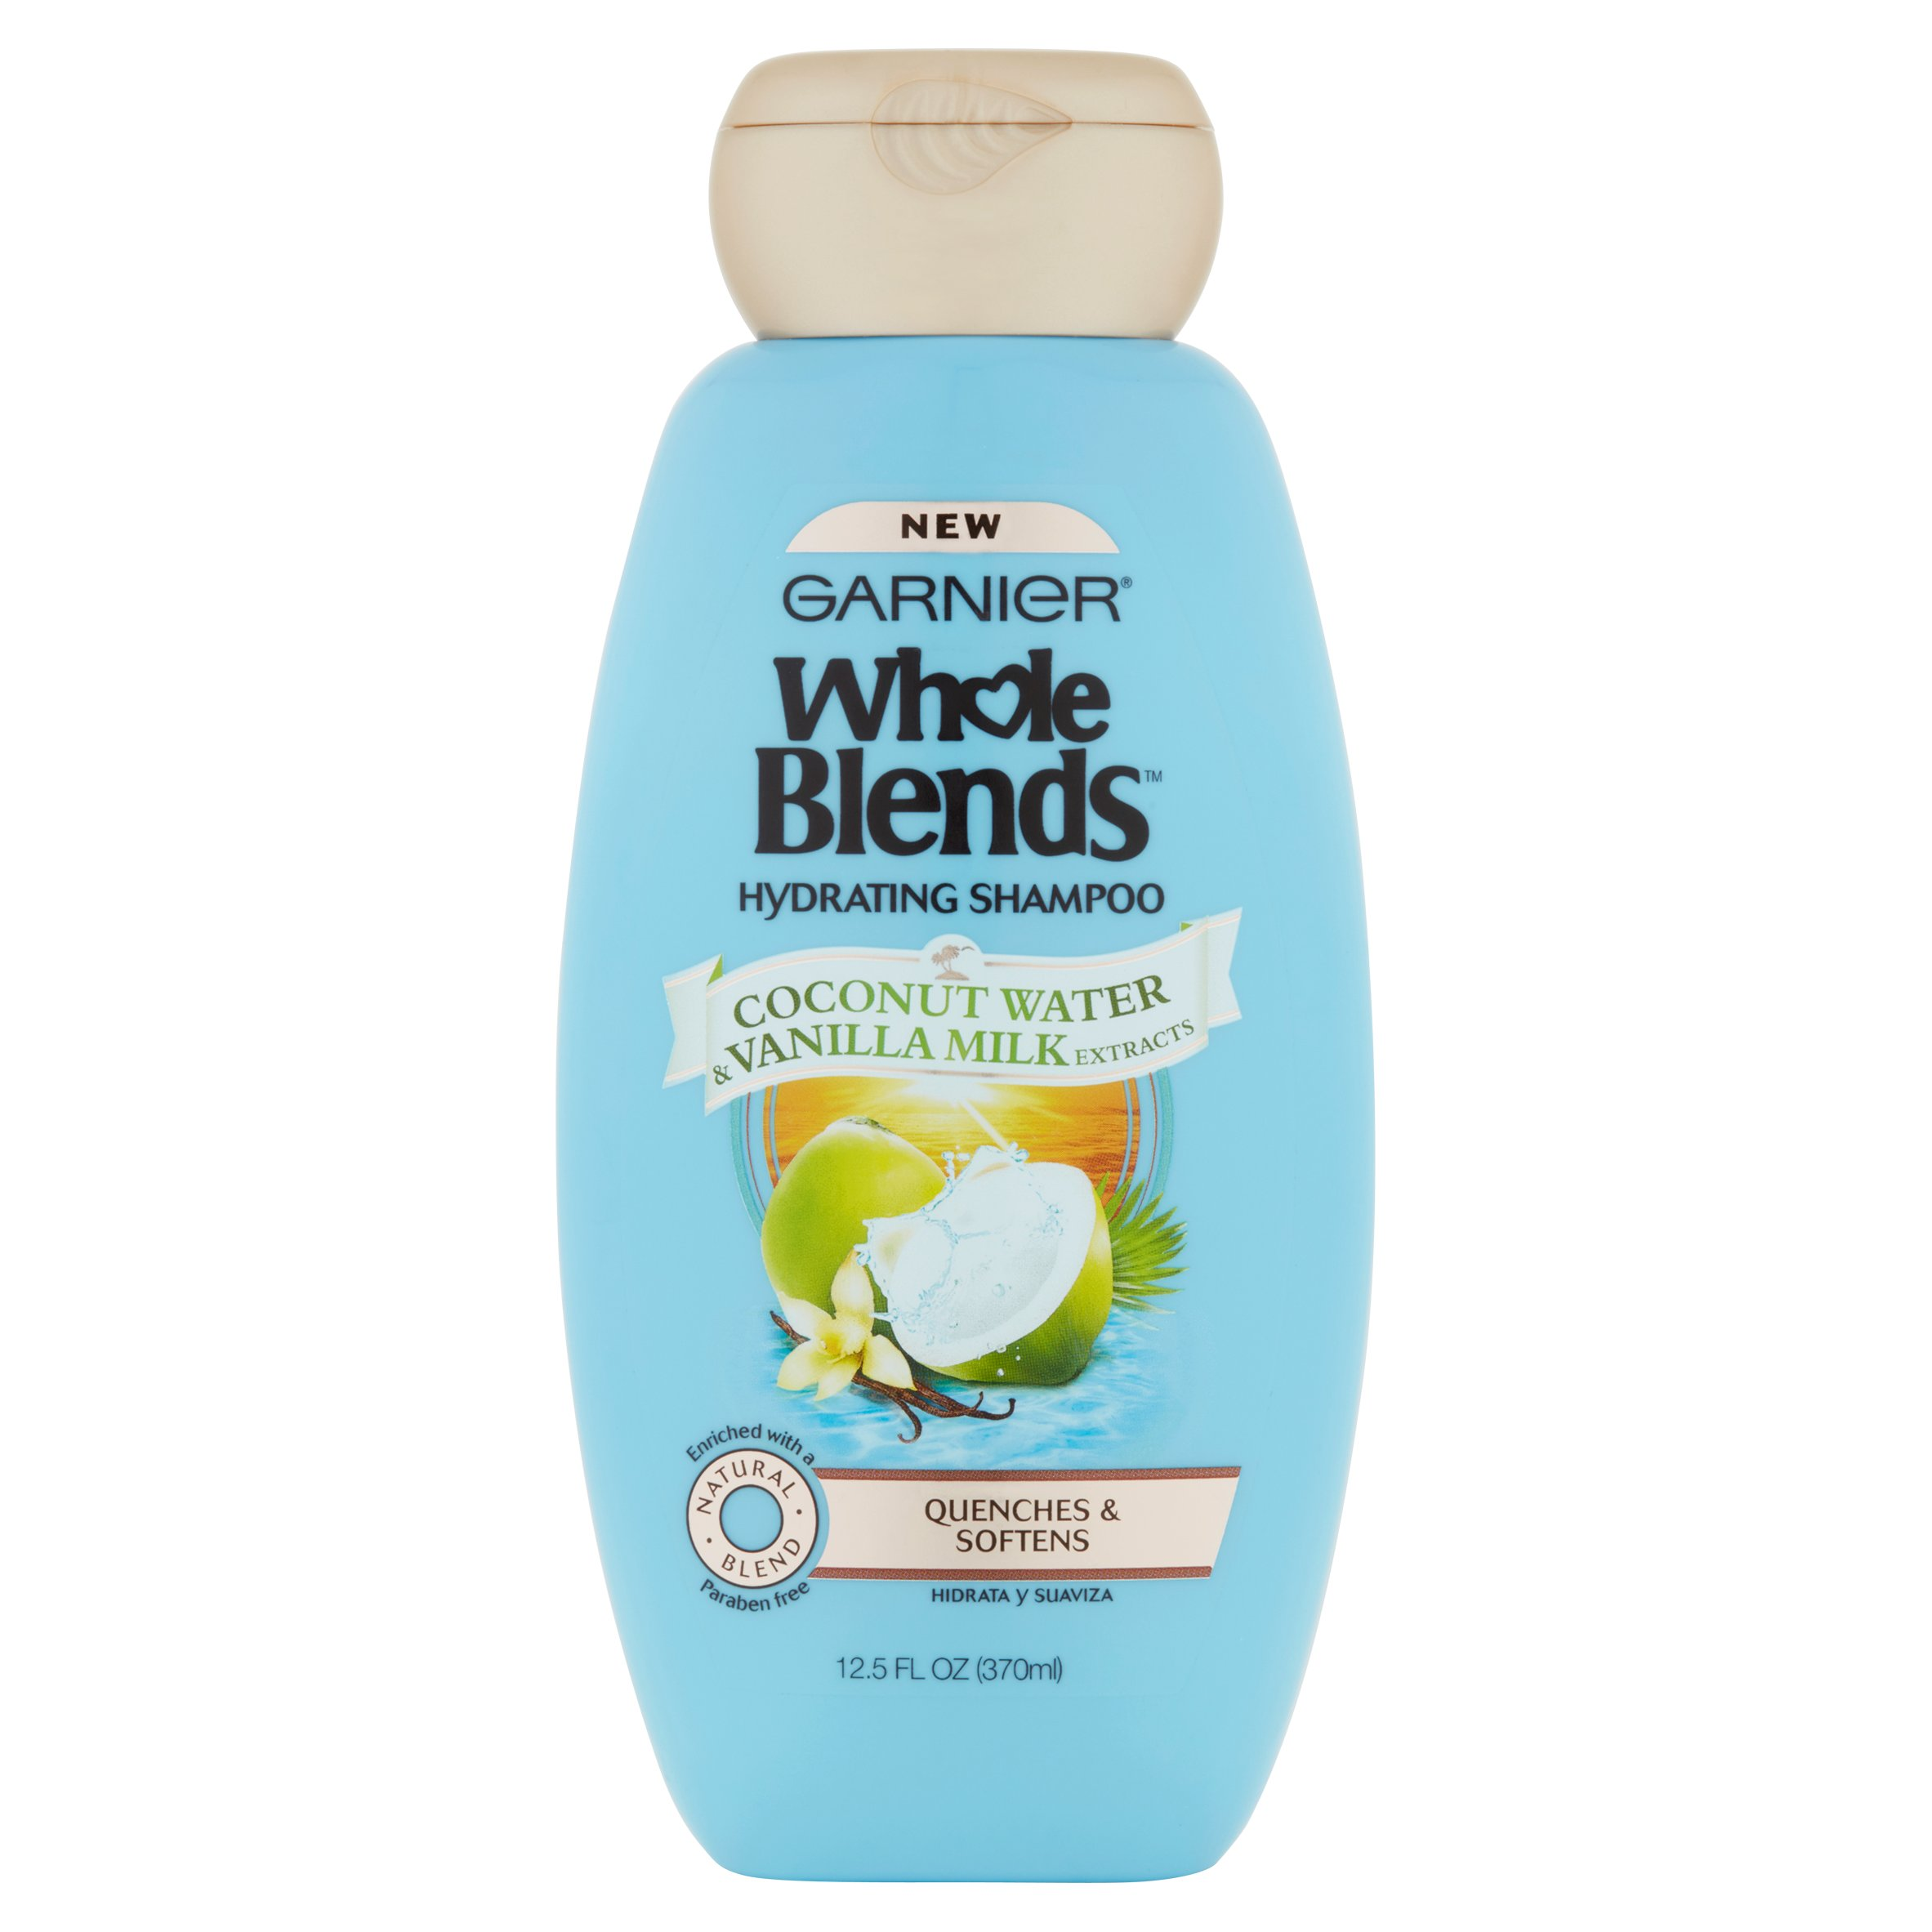 (2 Pack) Garnier Whole Blends Shampoo with Coconut Water & Vanilla Milk Extracts 12.5 FL OZ